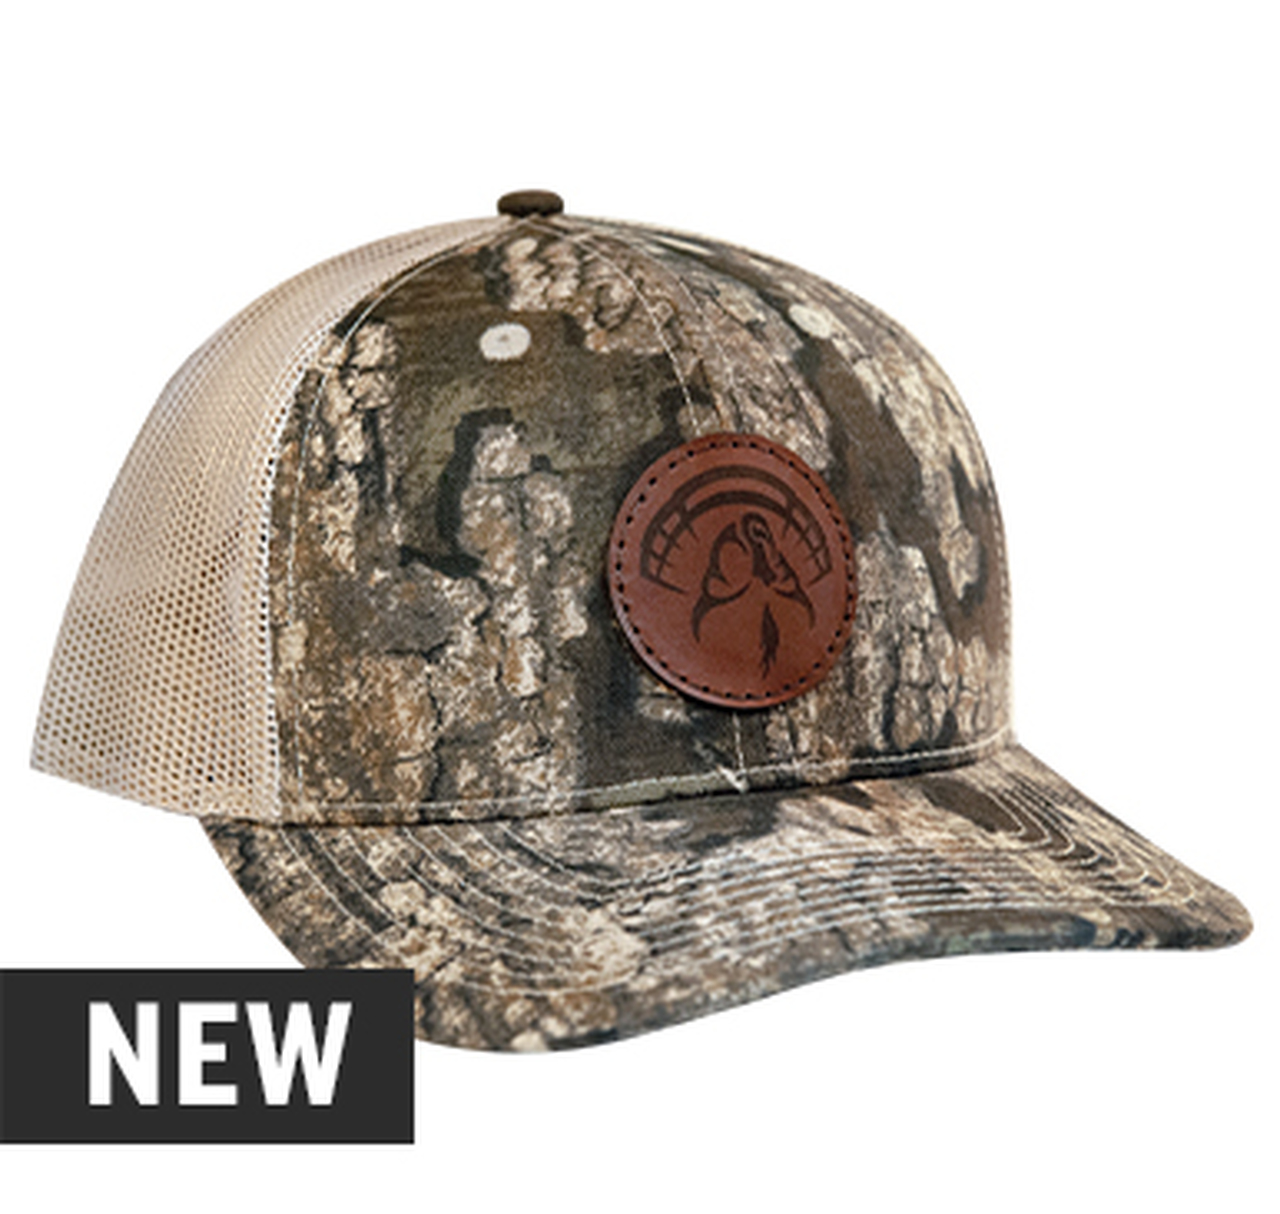 Strut Commander Realtree Timber Leather Patch Hat